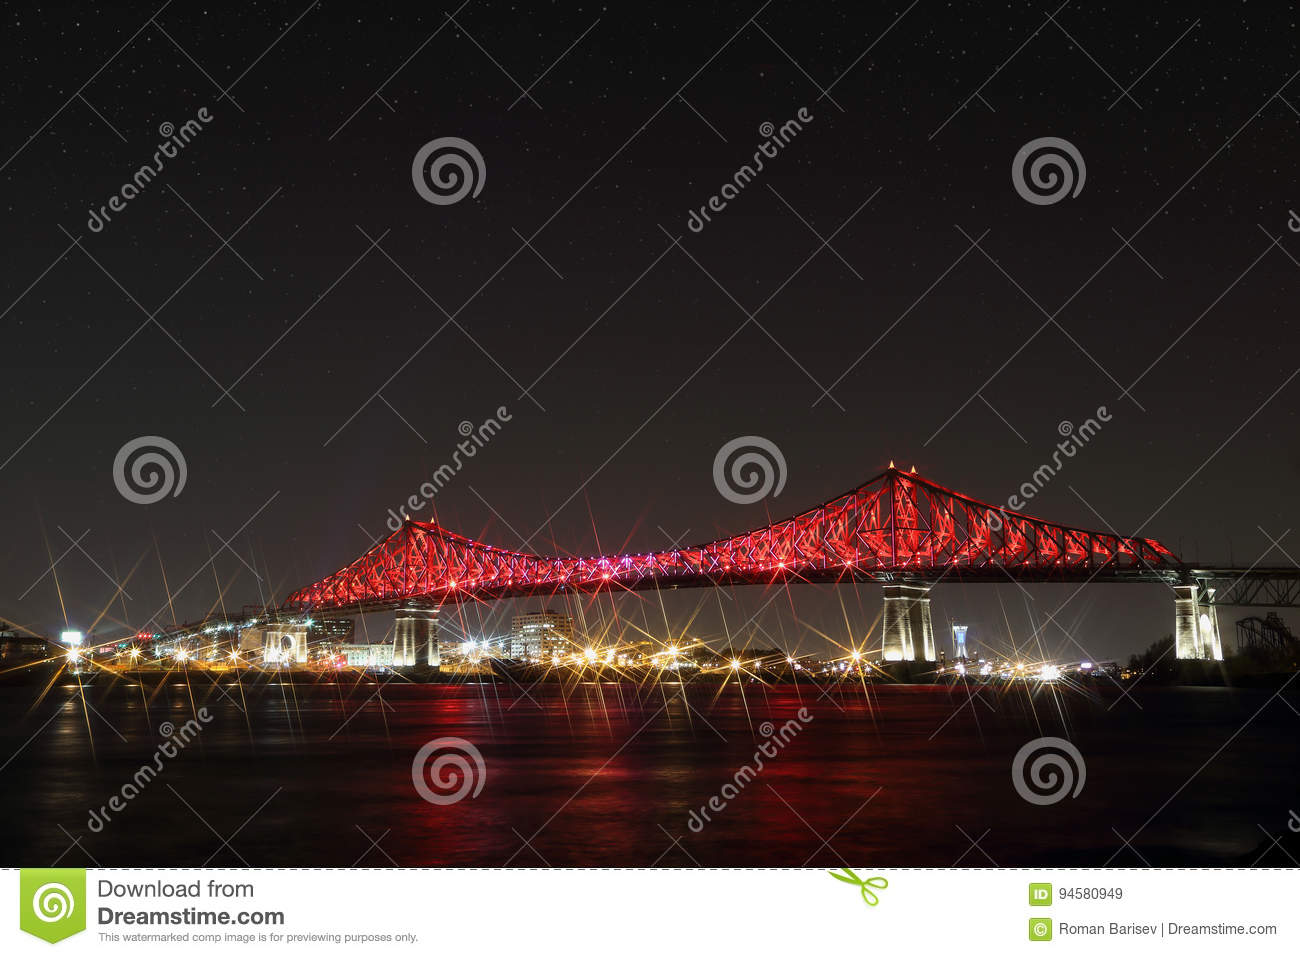 Jacques Cartier Bridge Illumination in Montreal. Montreal's 375th anniversary. luminous colorful interactive